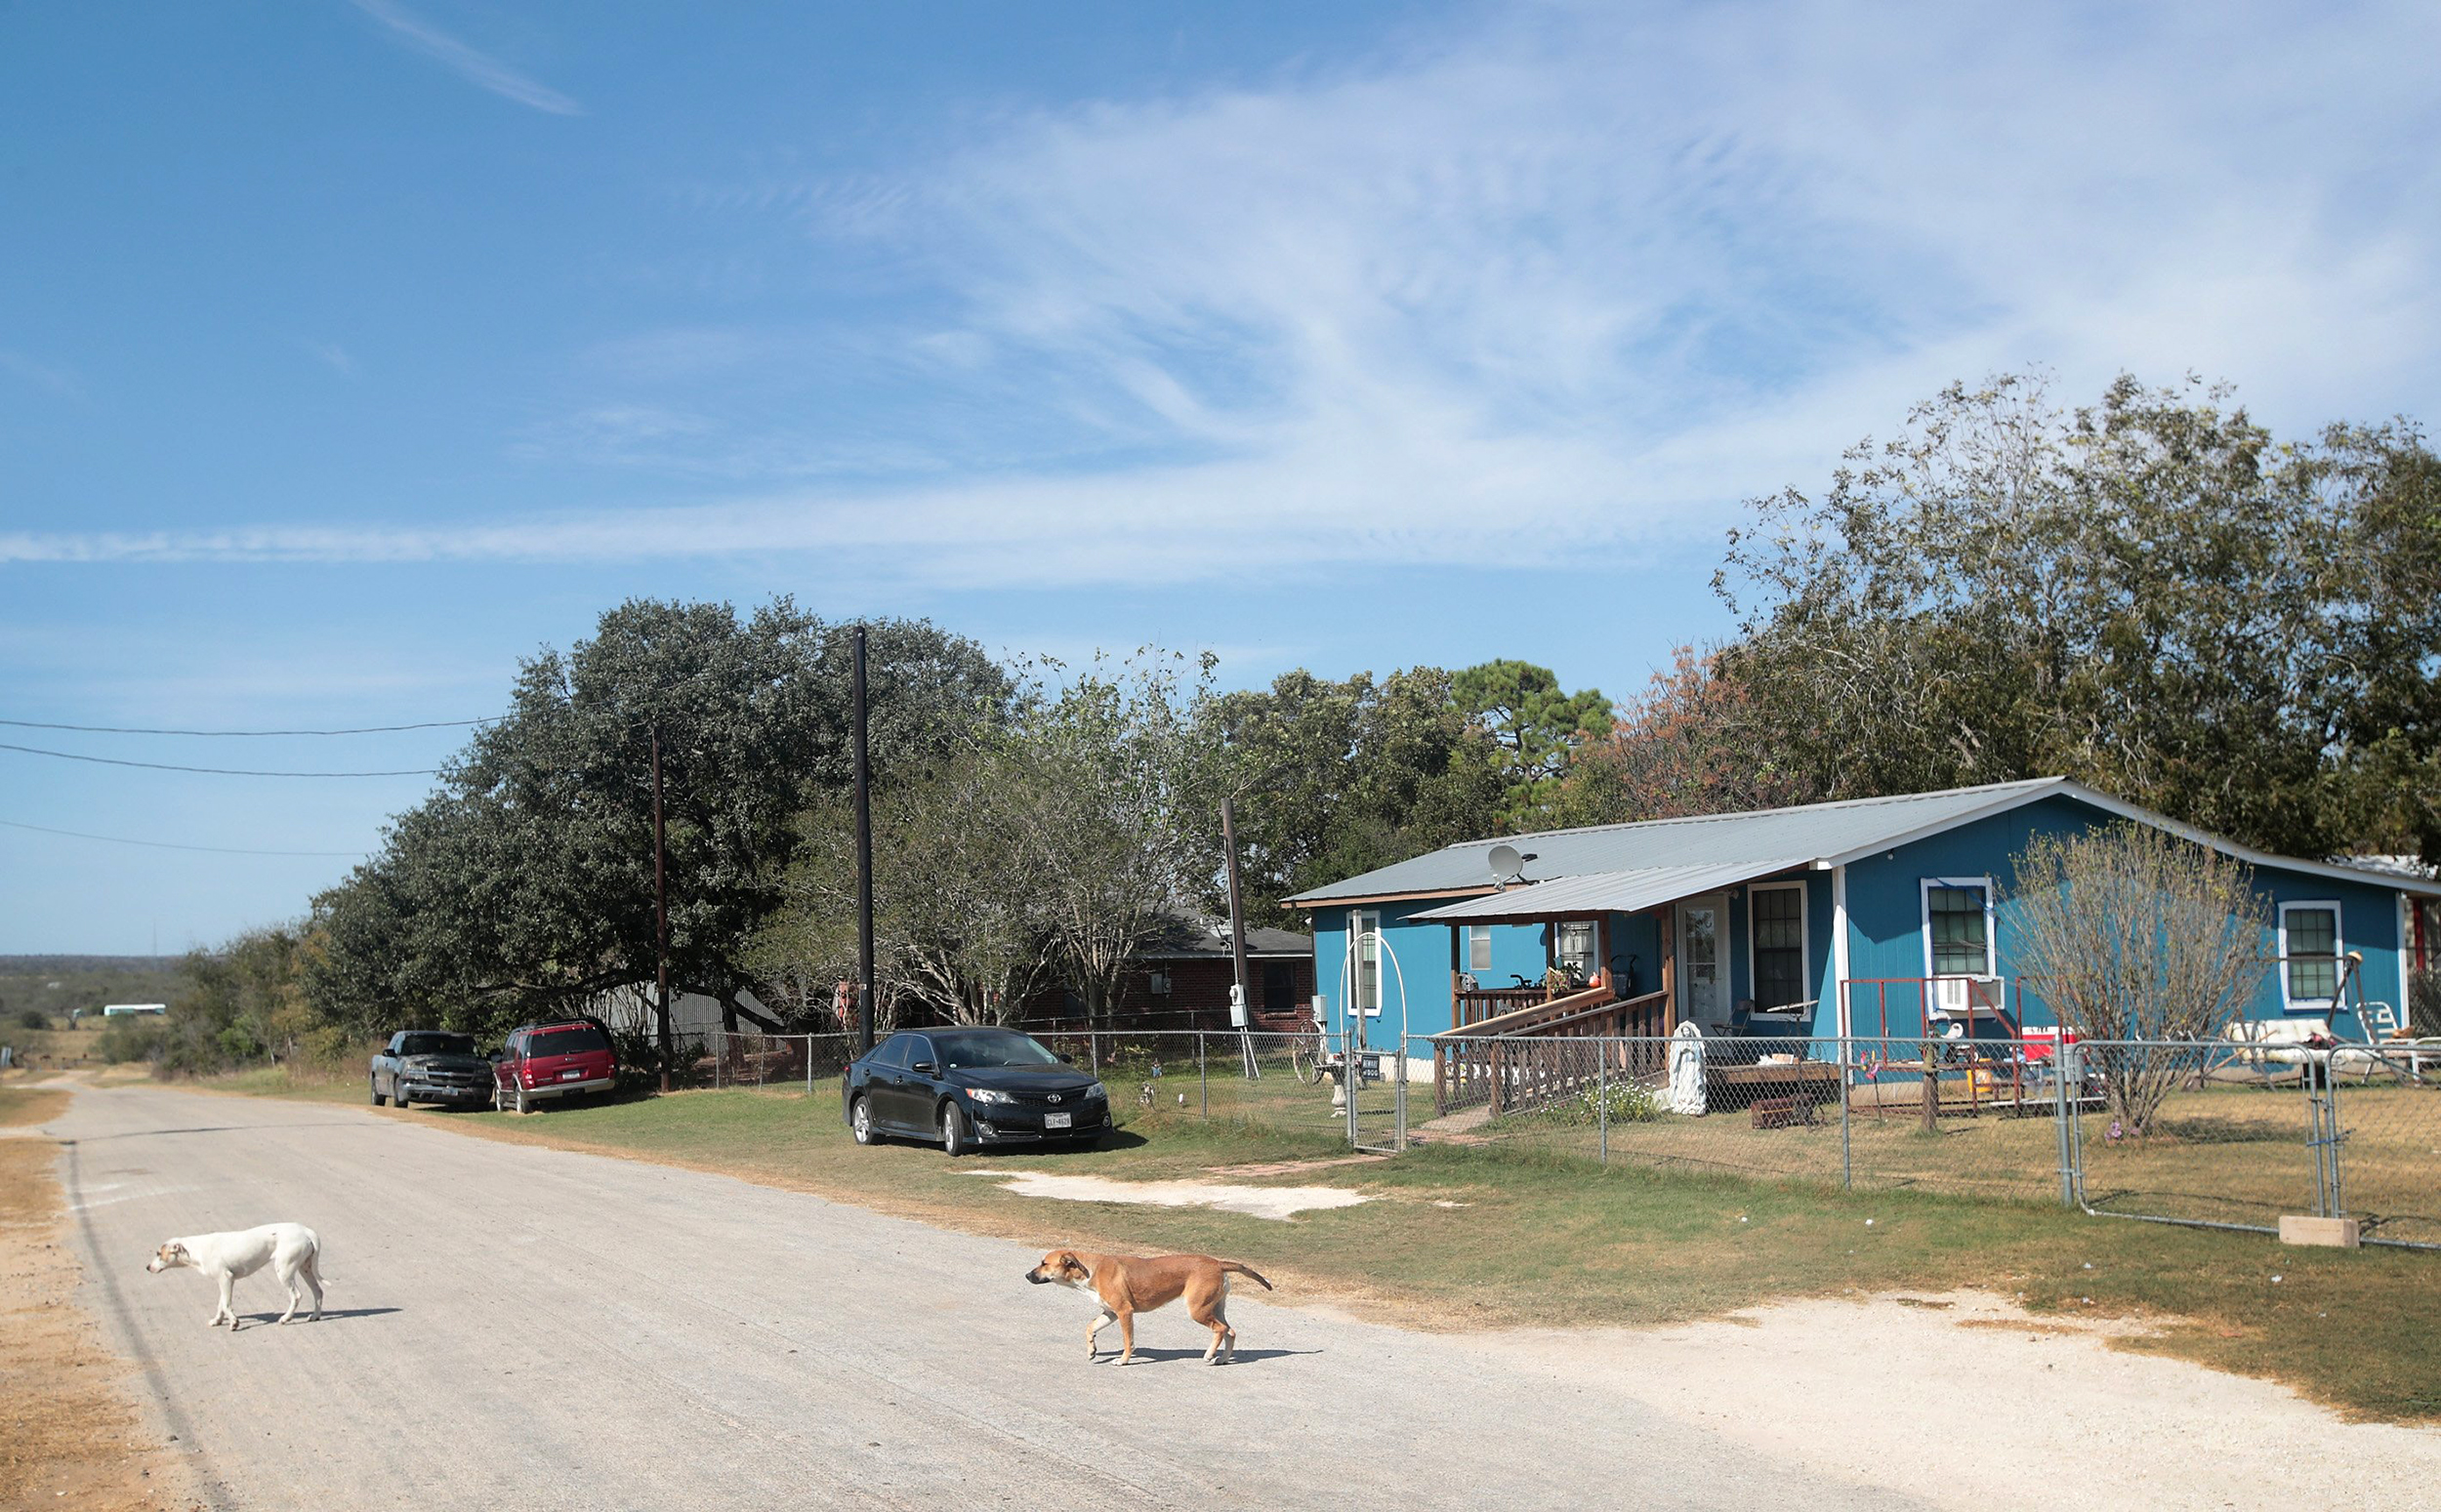 Image: Stray dogs walk across a street near the First Baptist Church of Sutherland Springs